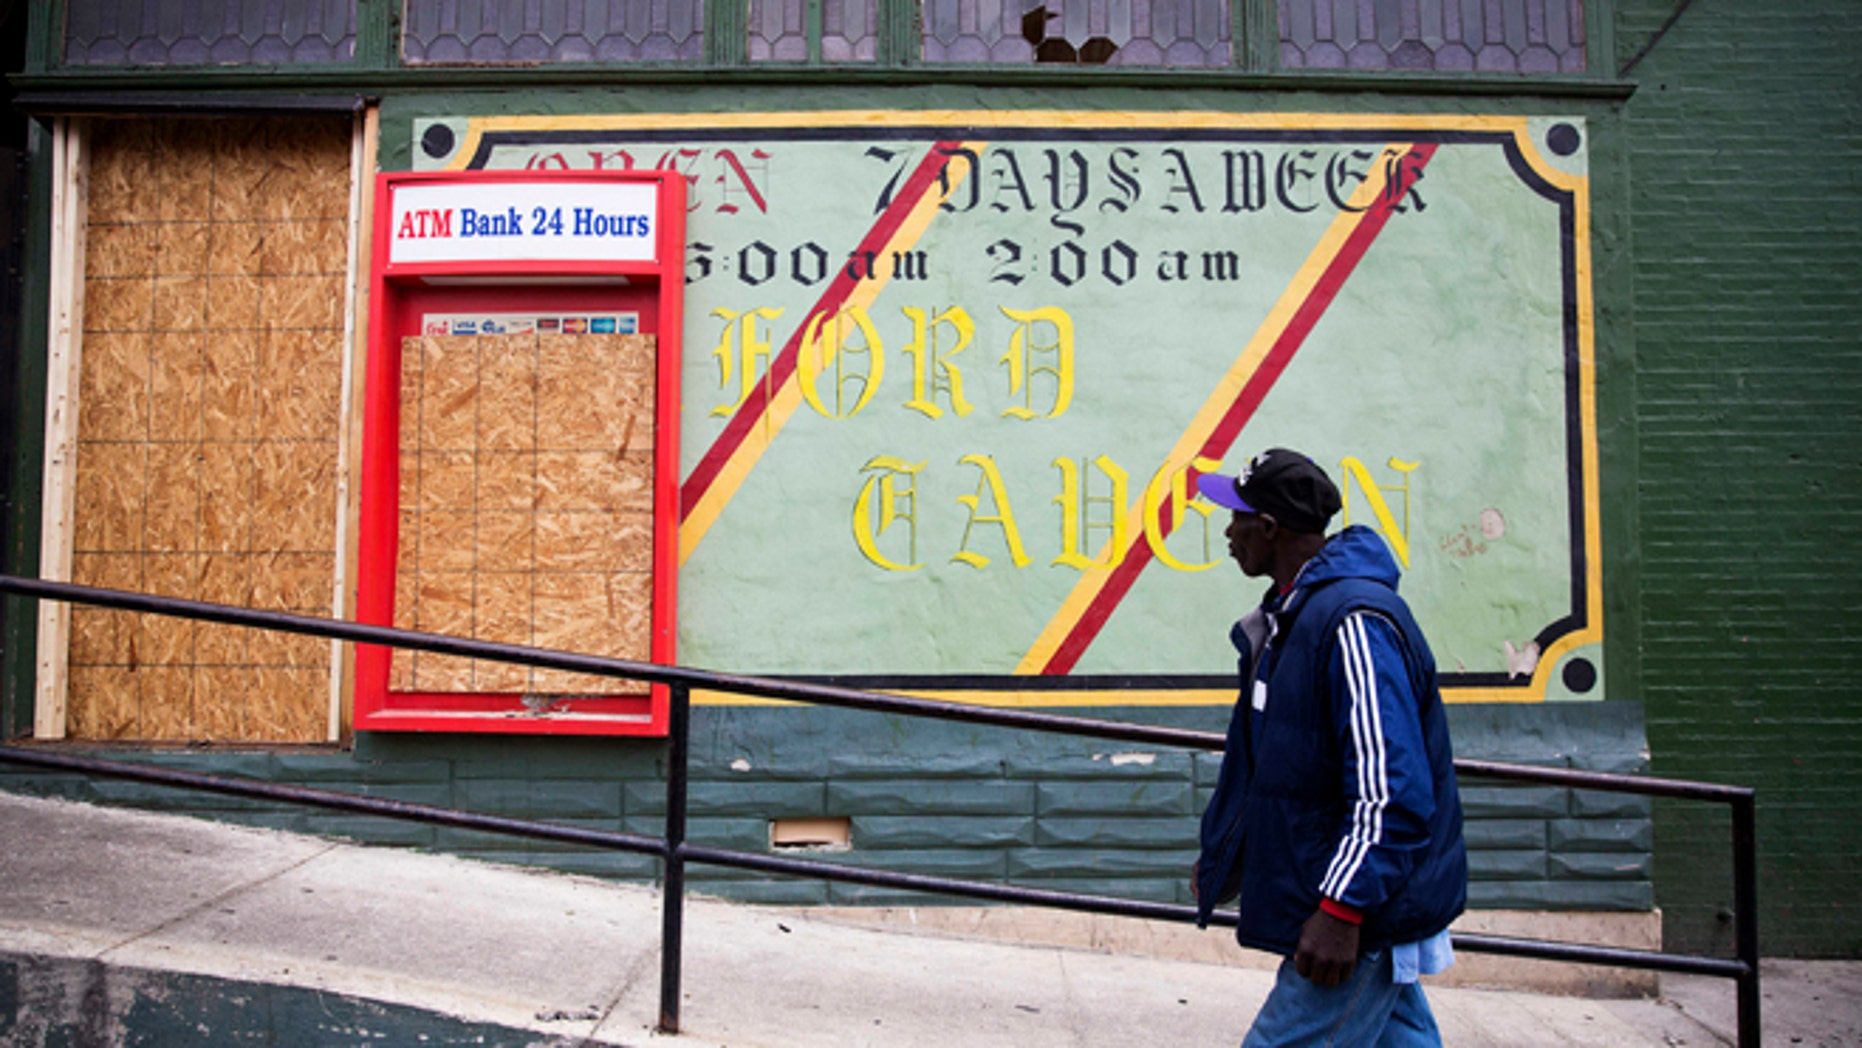 FILE - In this April 30, 2015 file photo, a man walks past the damaged Oxford Tavern in Baltimore. In a presidential campaign where candidates are jockeying to be champions of the middle class and courting donations from the wealthy, the poor are inching their way into the debate. Tensions in Baltimore, Ferguson, Missouri, and elsewhere have sparked examinations of the relationship between poor communities and the police, as well as the systemic problems that have trapped many of the 45 million Americans living in poverty. But addressing the economic, education, and security issues that have plagued underprivileged neighborhoods for decades remains a politically elusive challenge. (AP Photo/David Goldman, File)